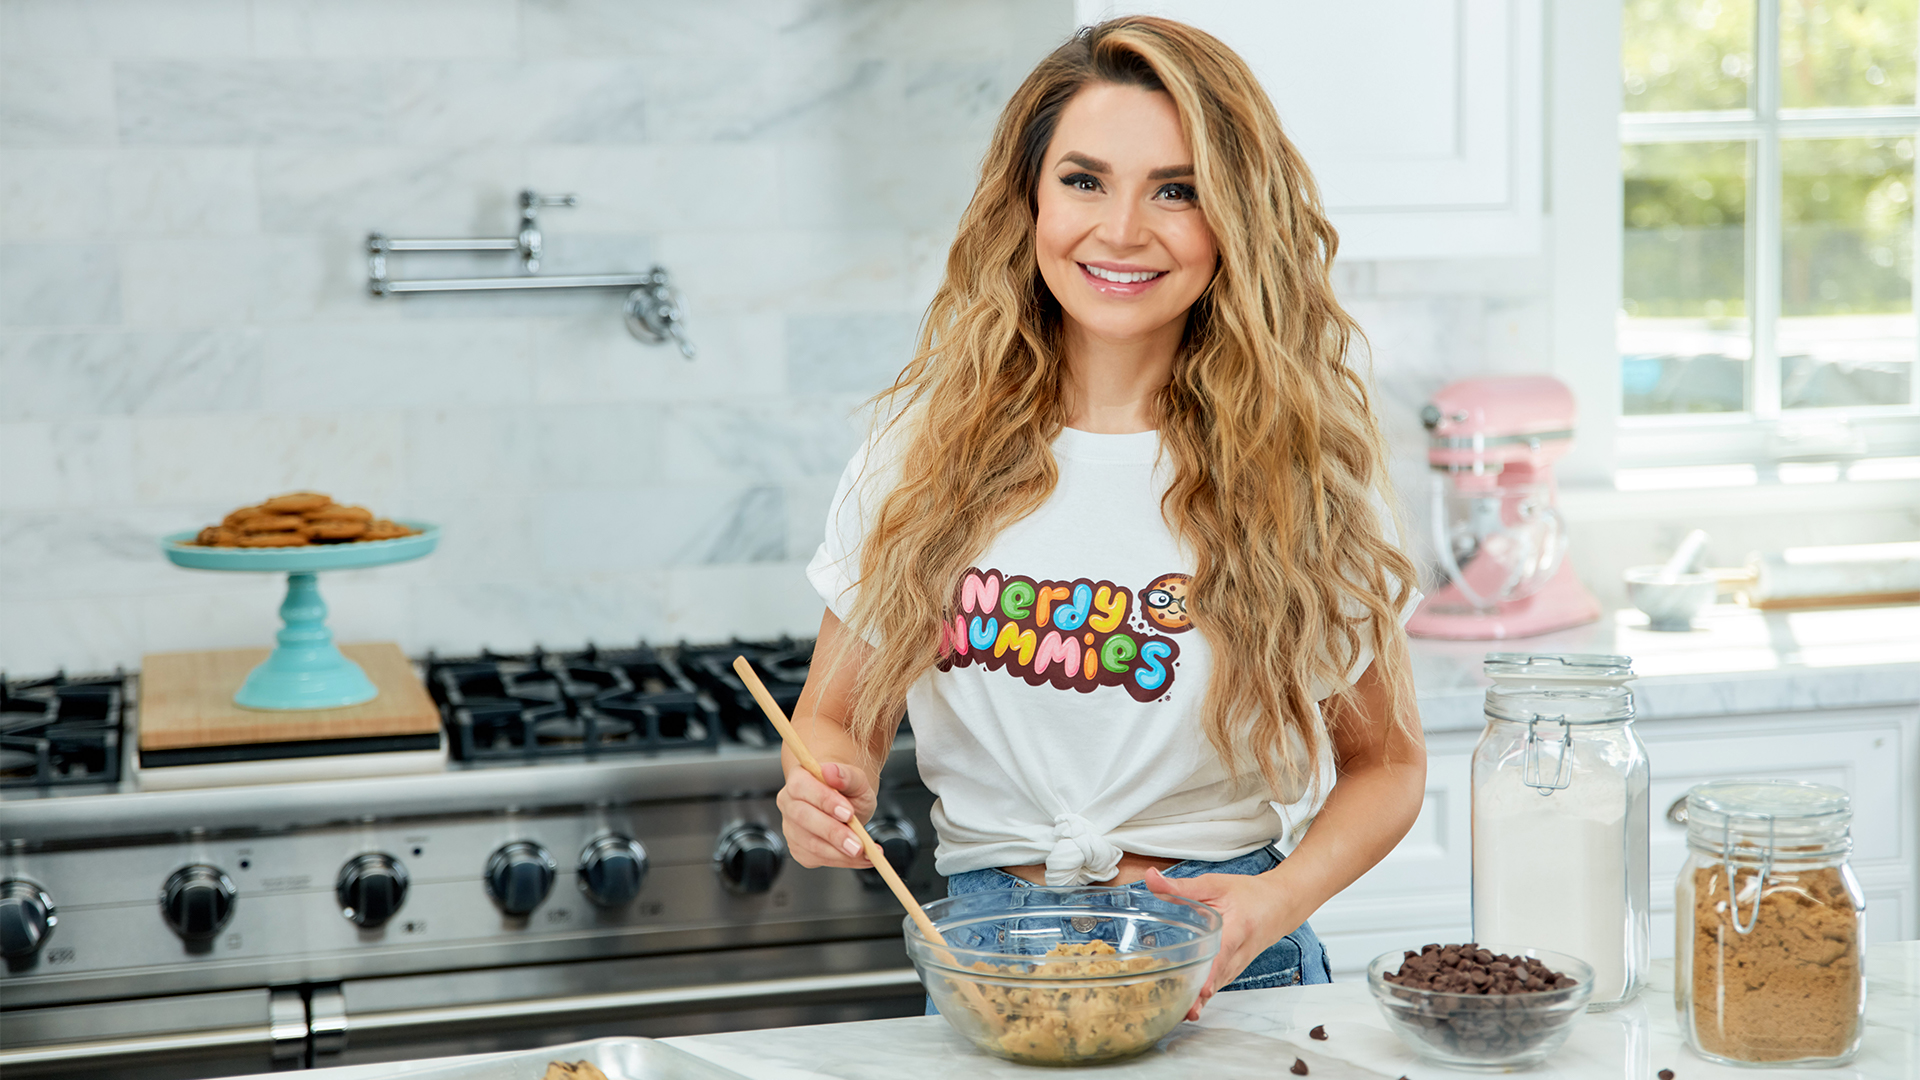 Rosanna Pansino - Nerdy Nummies, Cooking, and DIY!